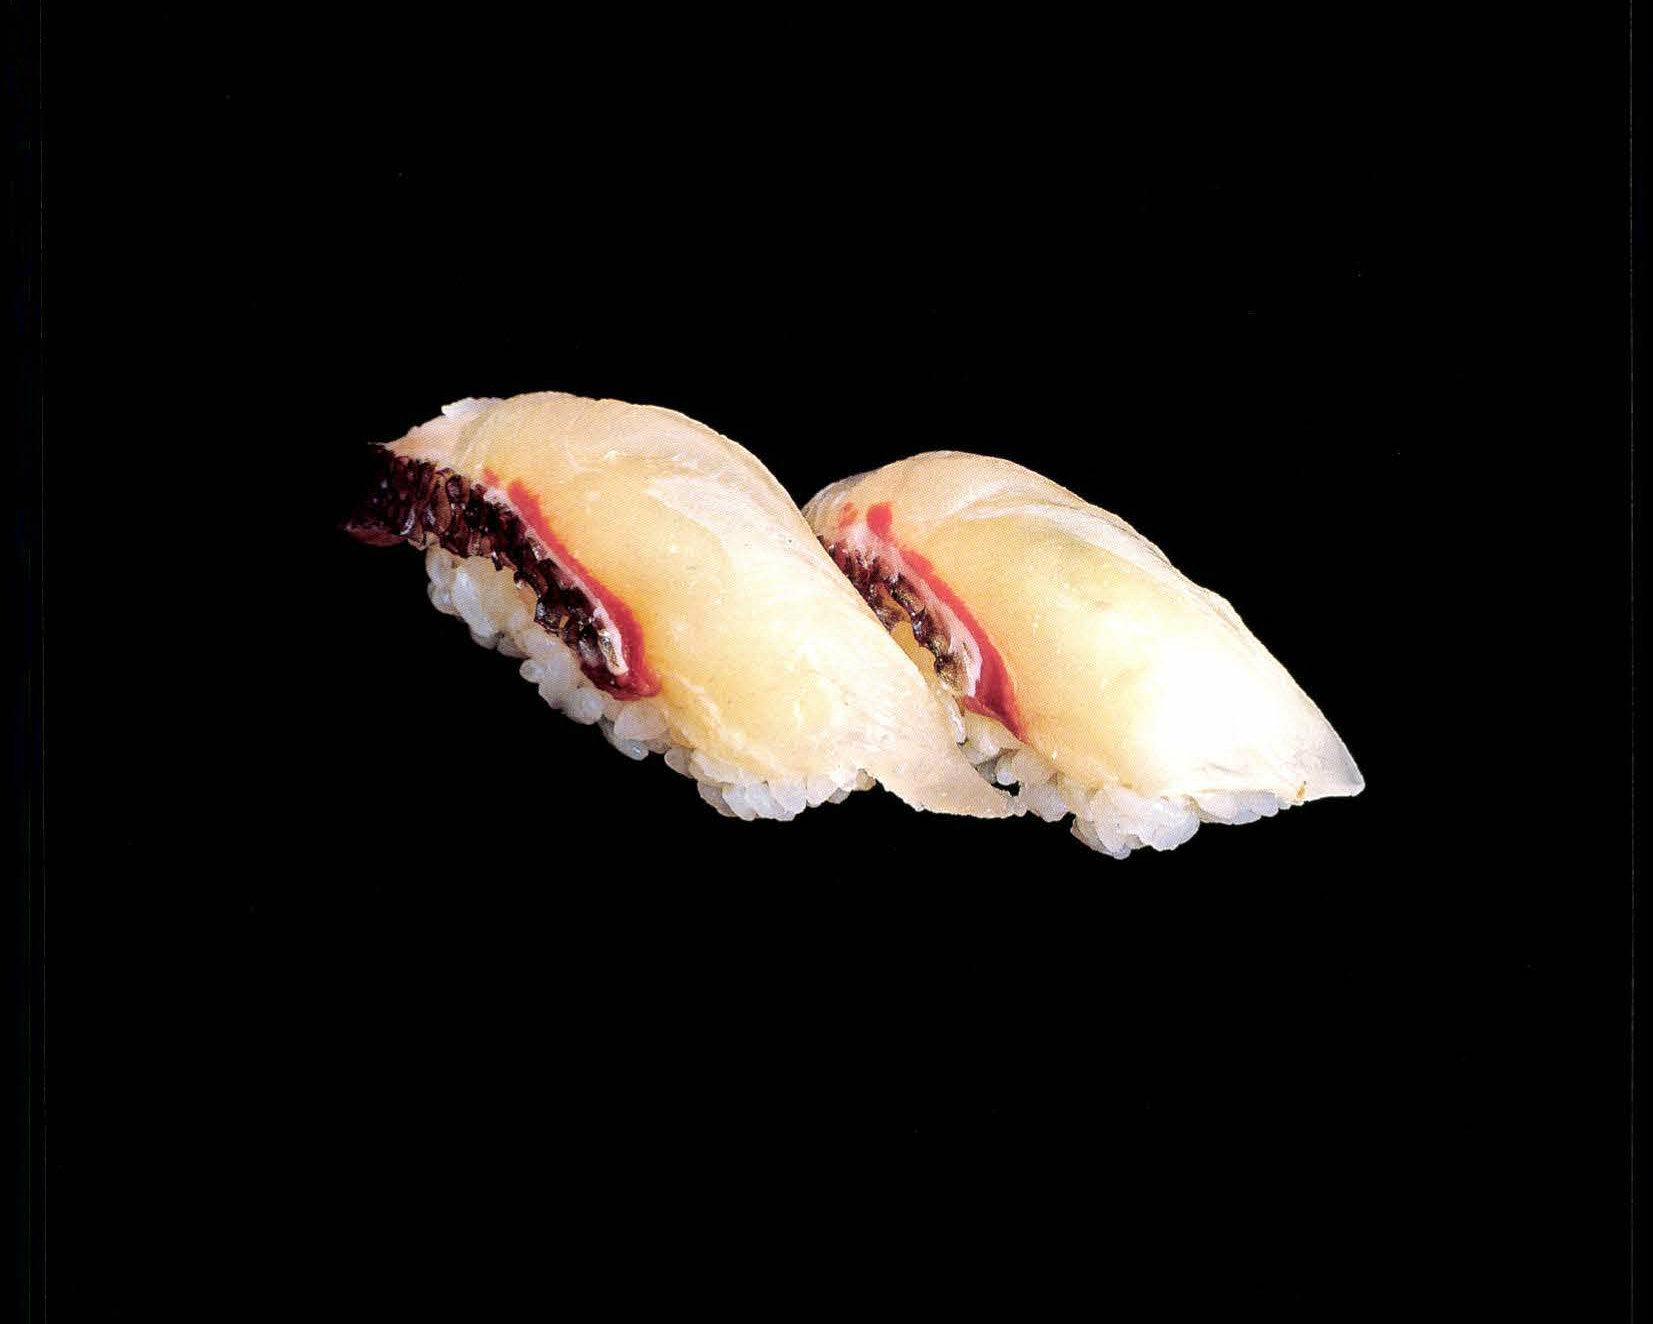 Fugu Blowfish Dishes And Sushi Restaurant Of Fukiyotei At Atami Since 1957 Stream tracks and playlists from oliveflounder on your desktop or mobile device. fukiyotei com